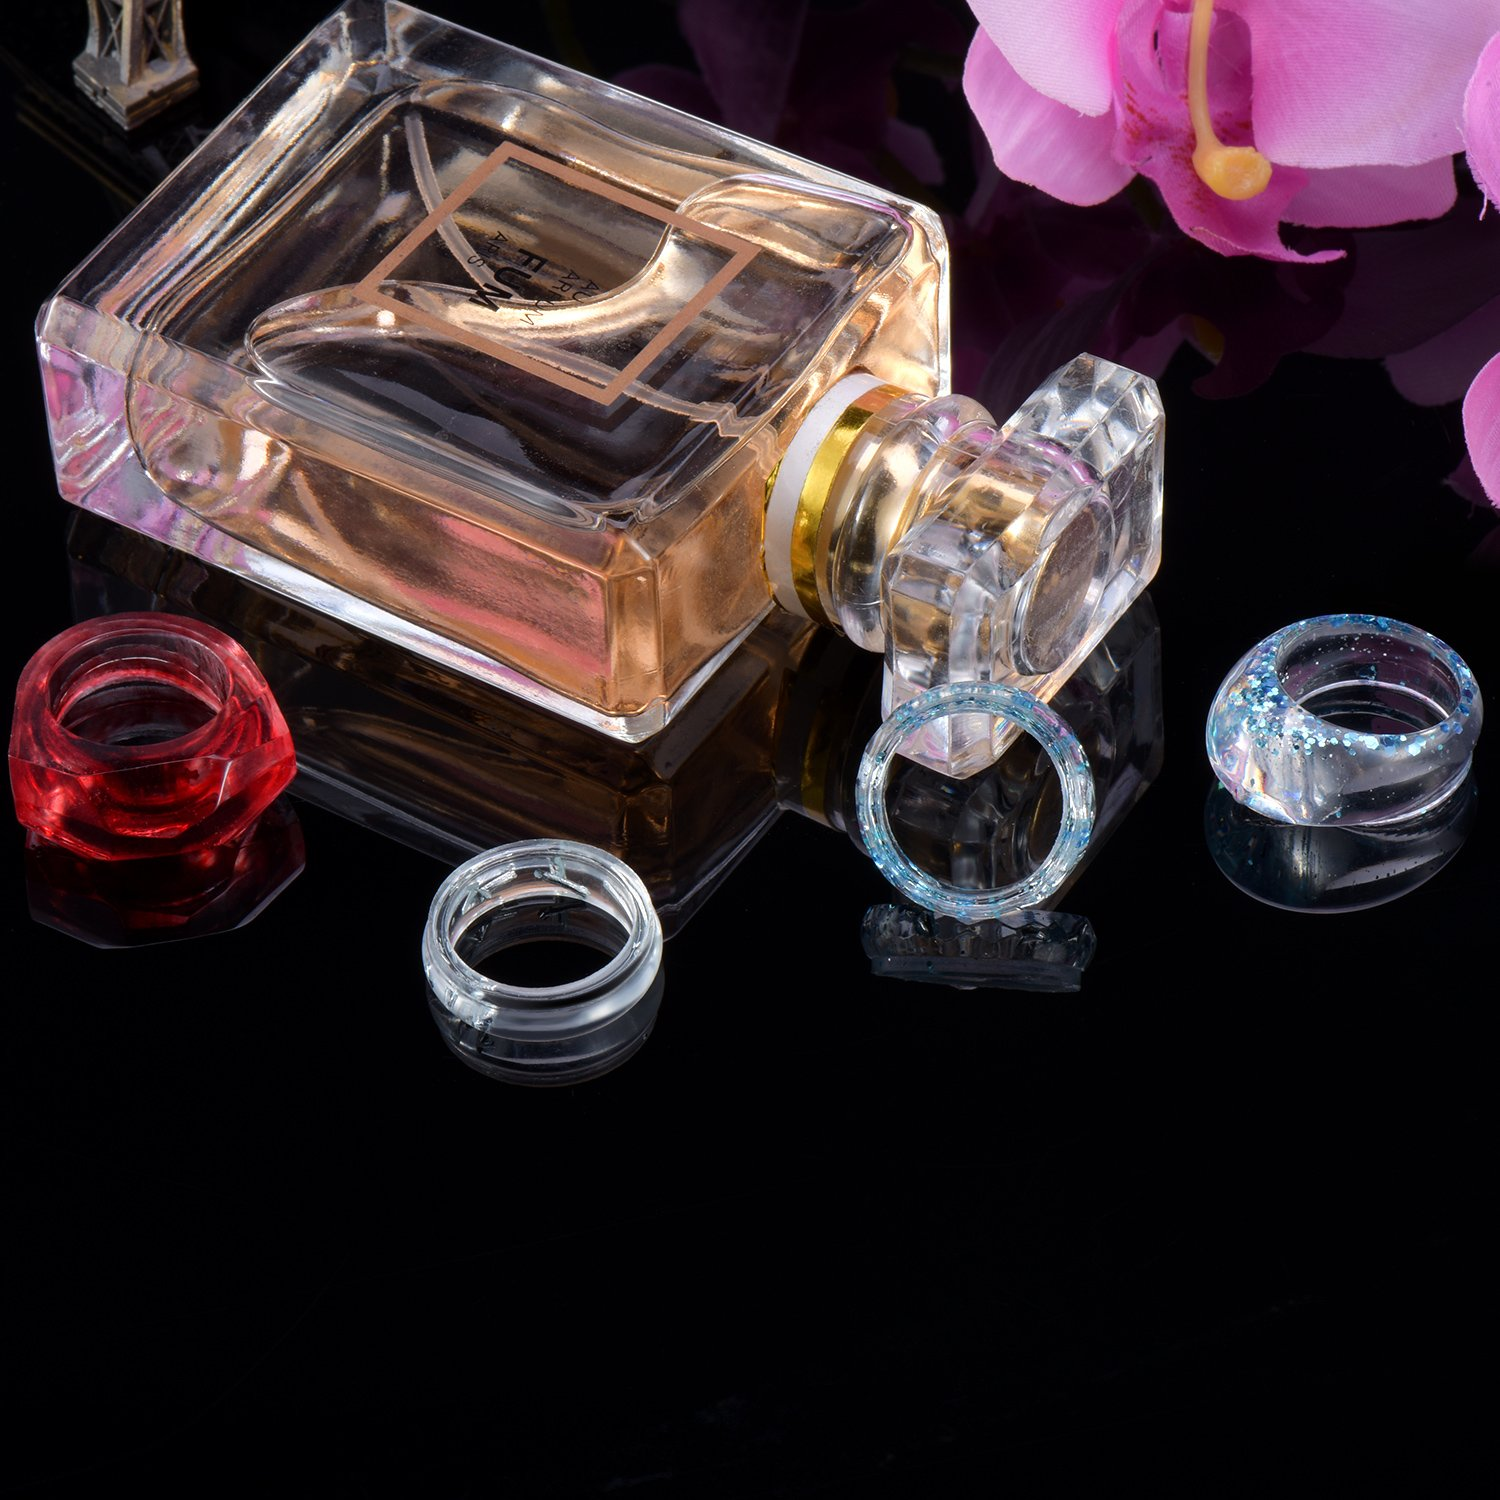 4 Types Canomo 12 Pieces 3 Size Silicone Ring Mold Jewelry Rings Resin Casting Circle Mould with 5 Pieces 2ml Plastic Droppers for DIY Craft Ring Making